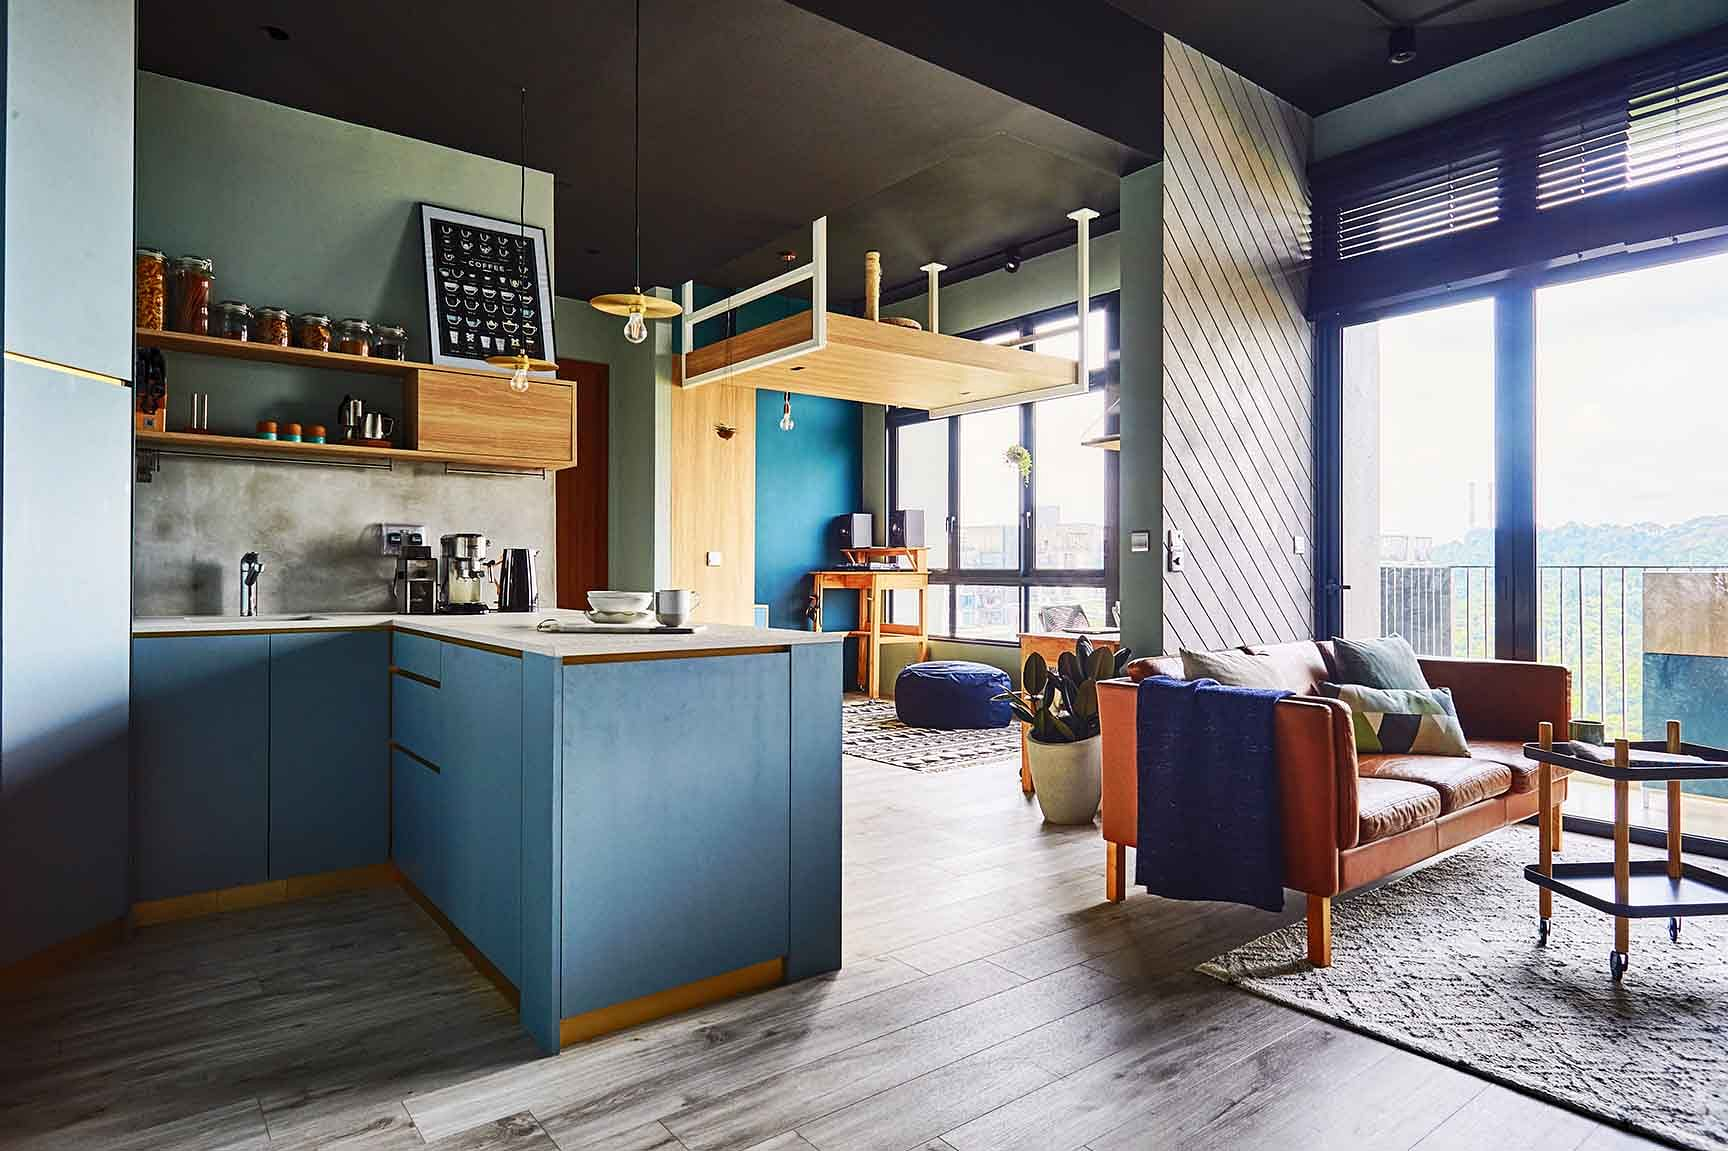 House Tour: A minimalist, Nordic-style two-bedroom condo apartment with green and blue shades title=